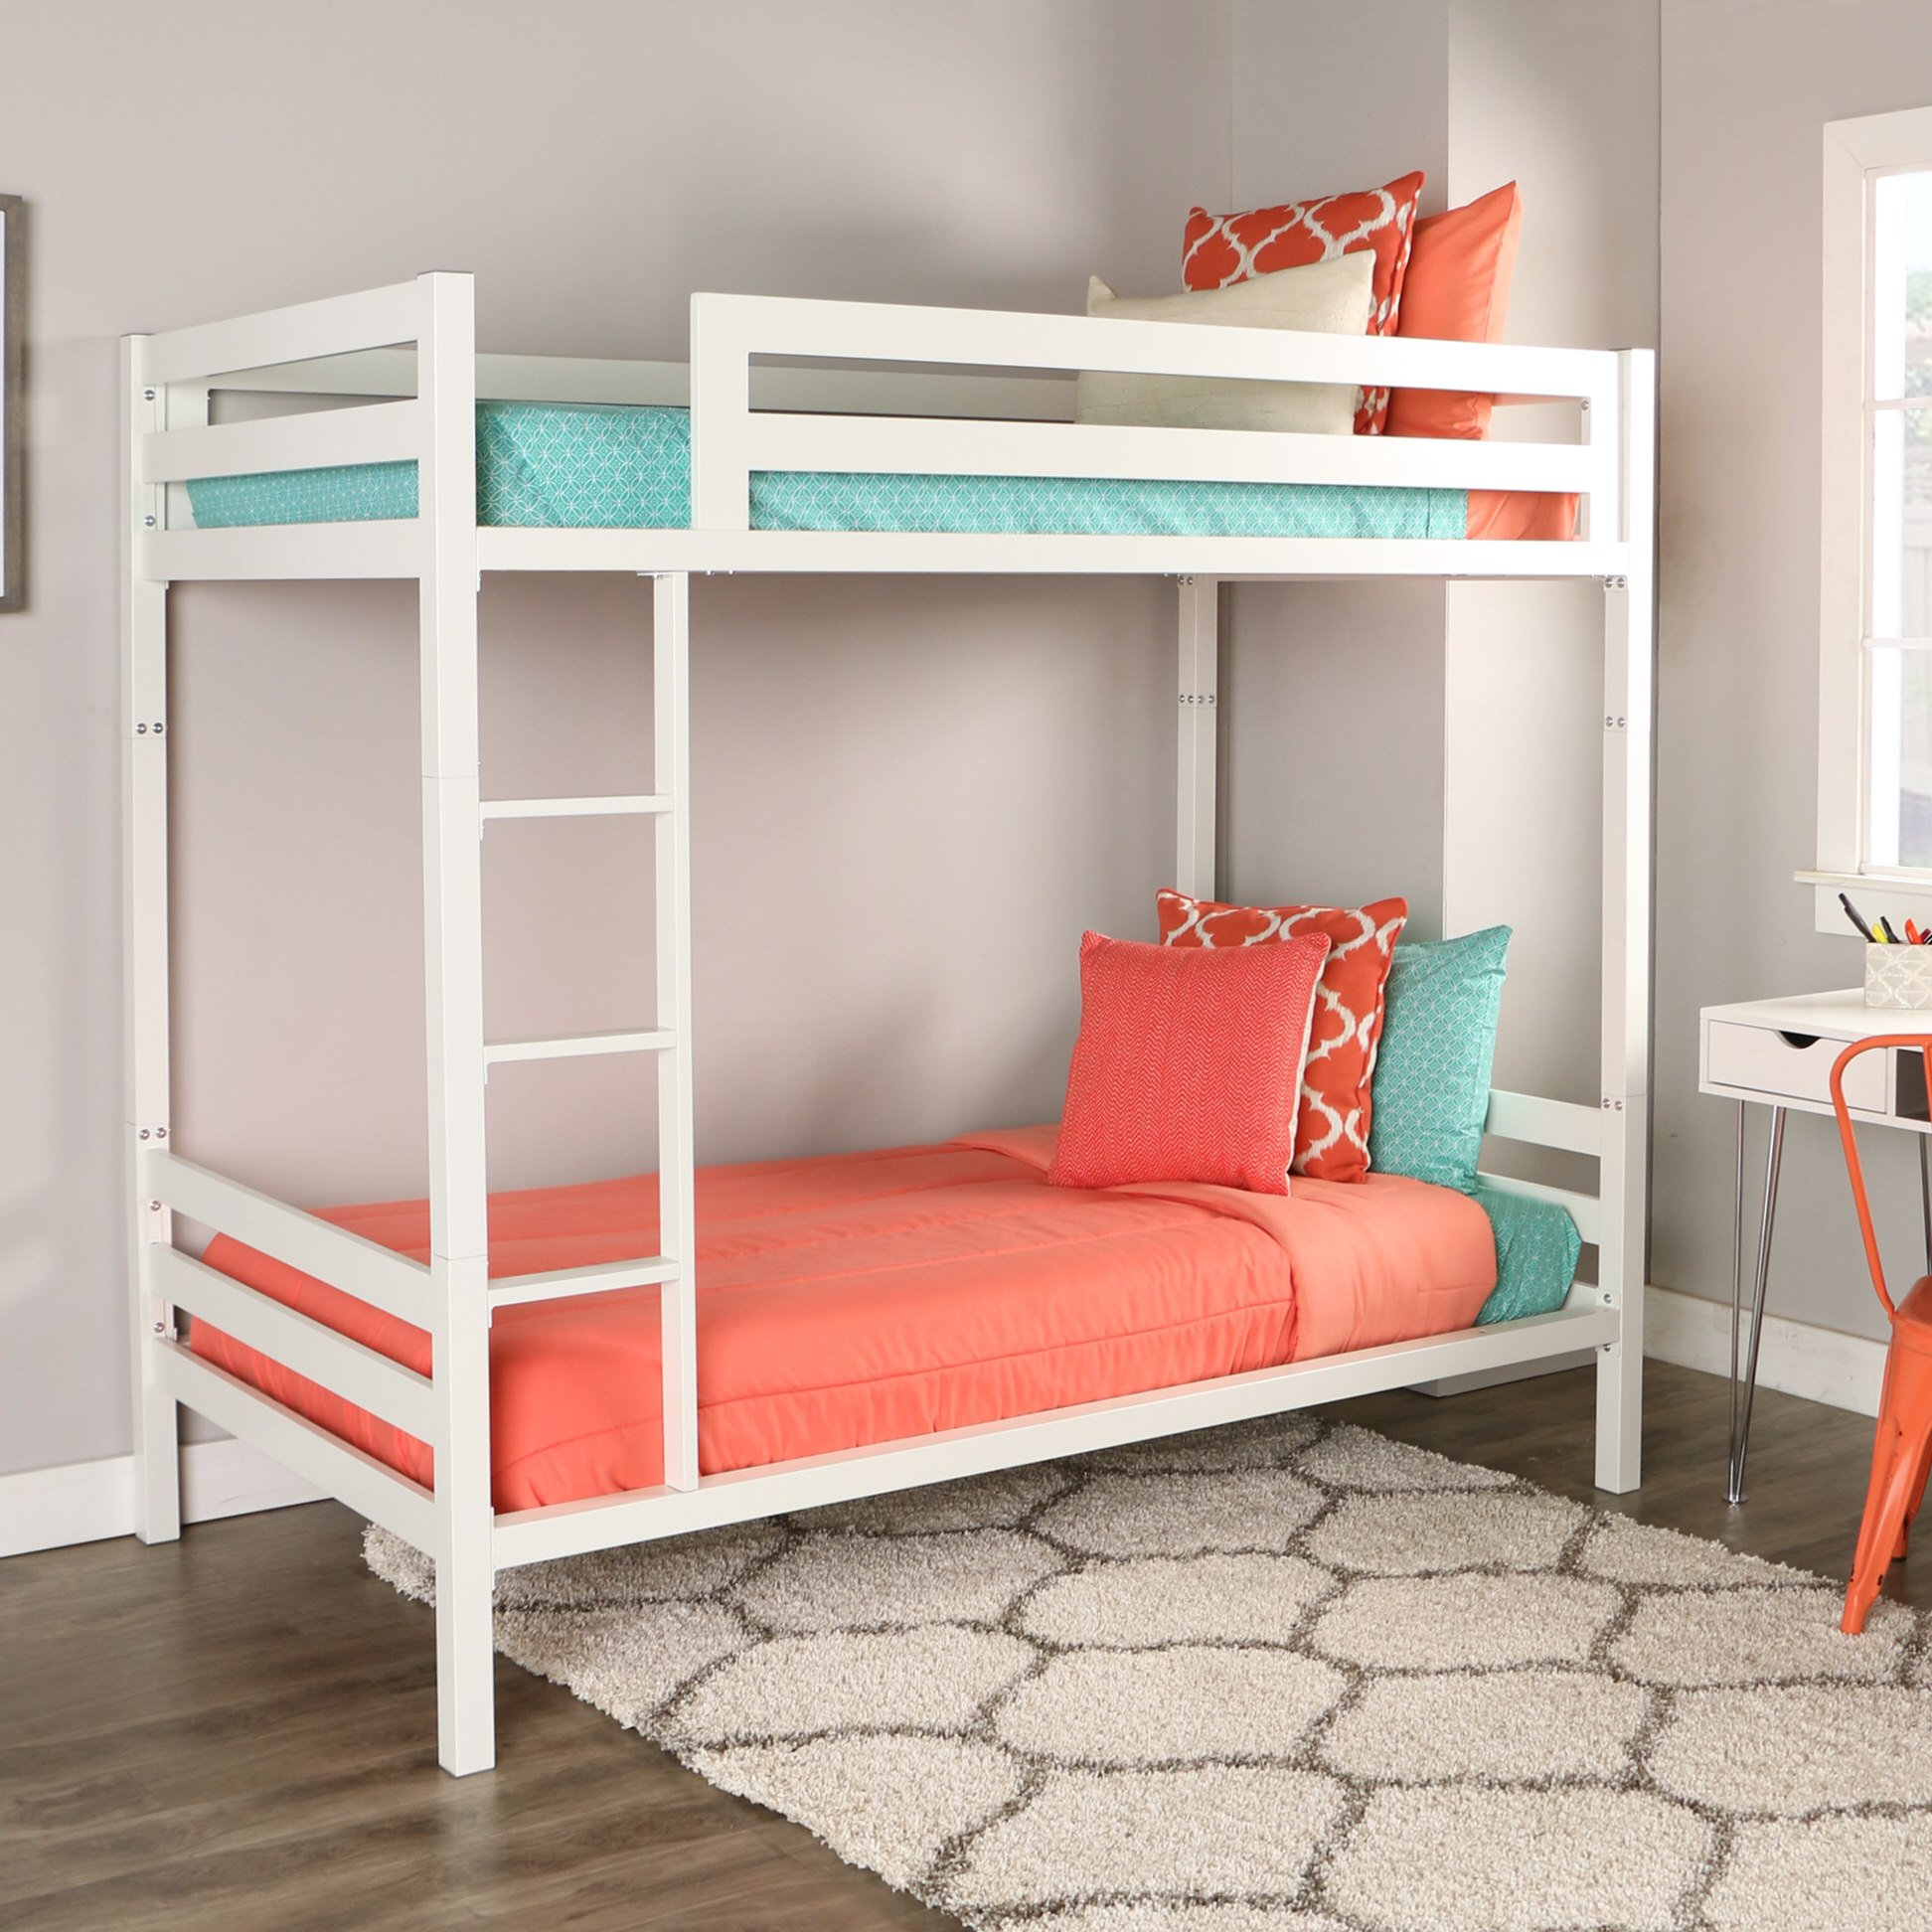 Twin bunk beds white - Twin Bunk Beds White